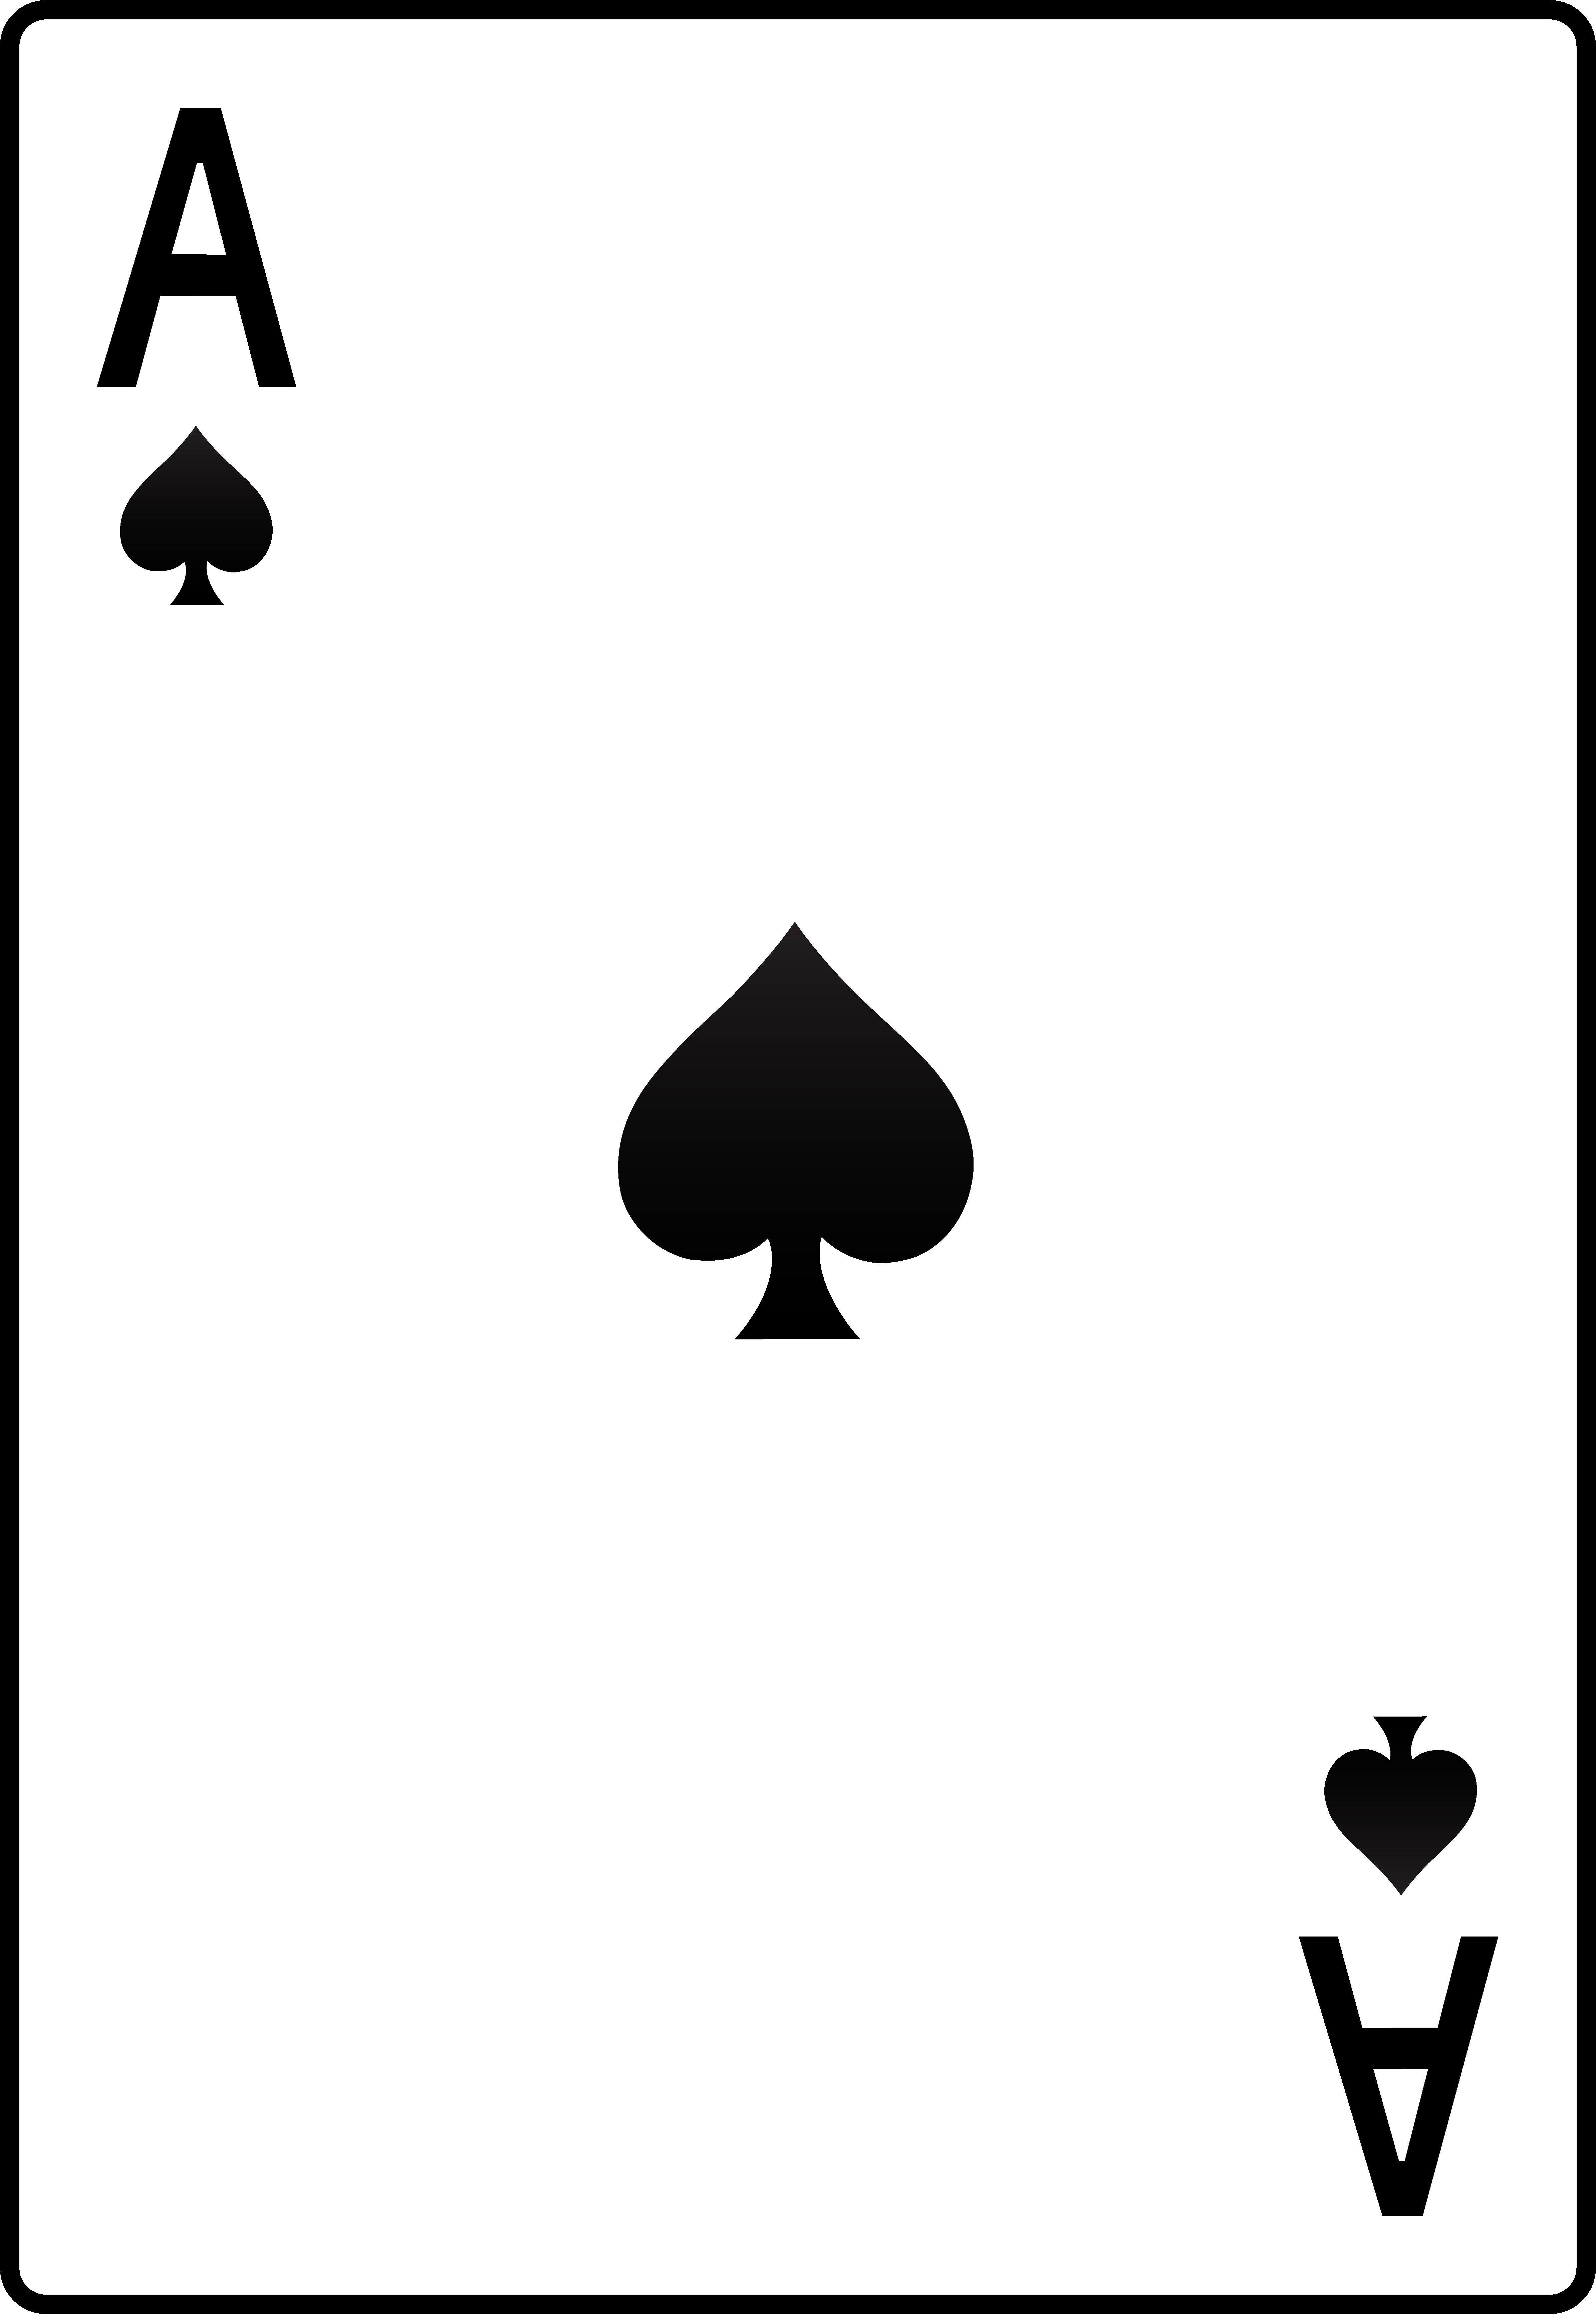 ace_of_spades.png